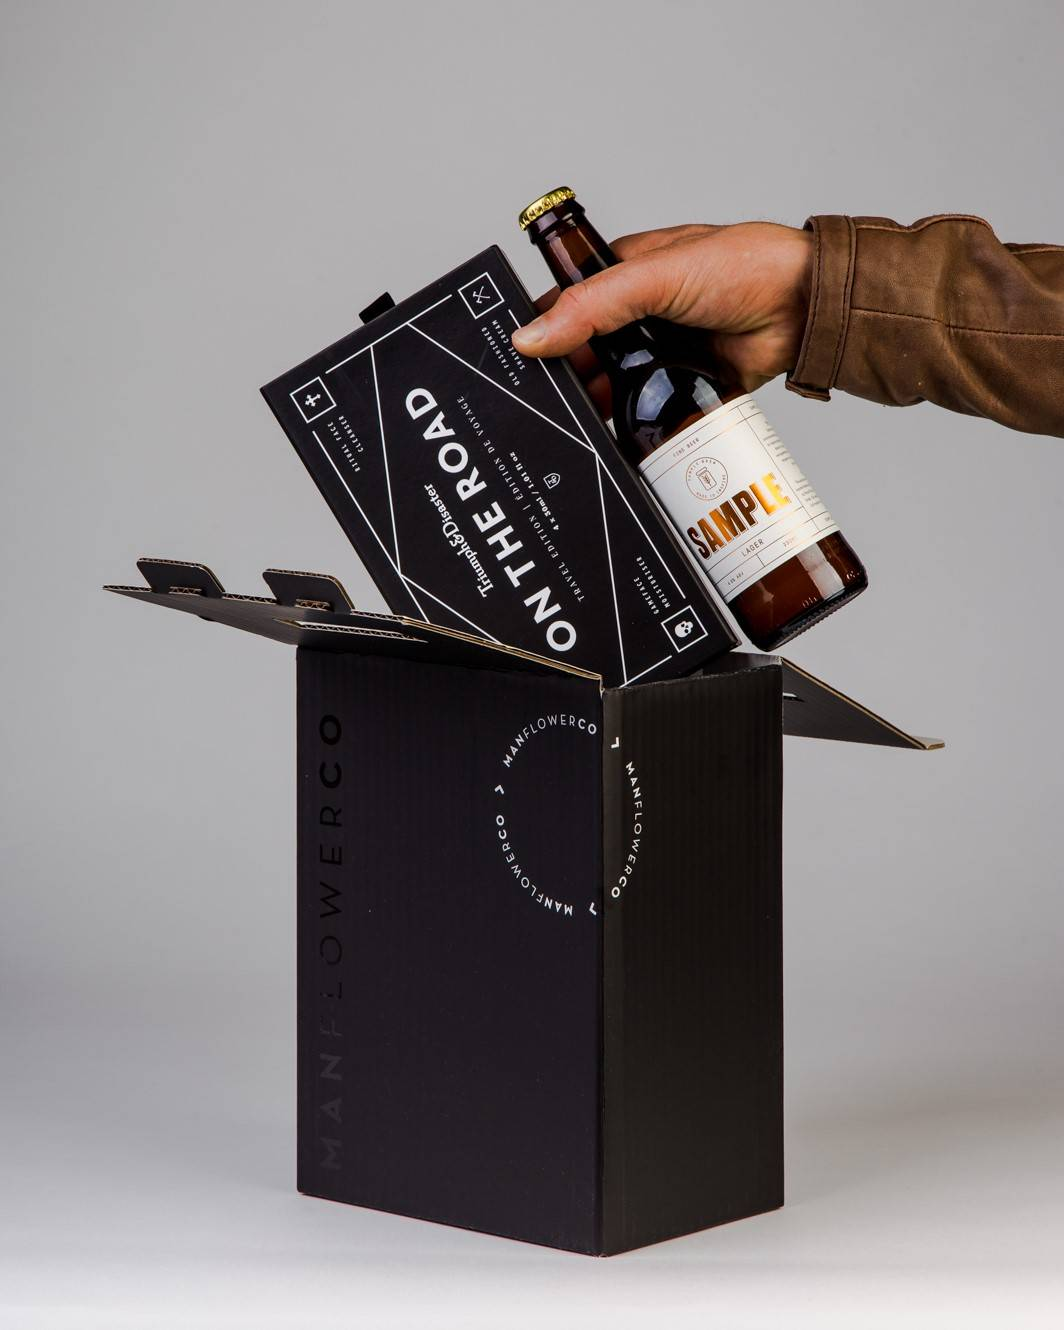 Skincare Travel kit + Beer, part of Manflower Co's range of holiday gifts for men.